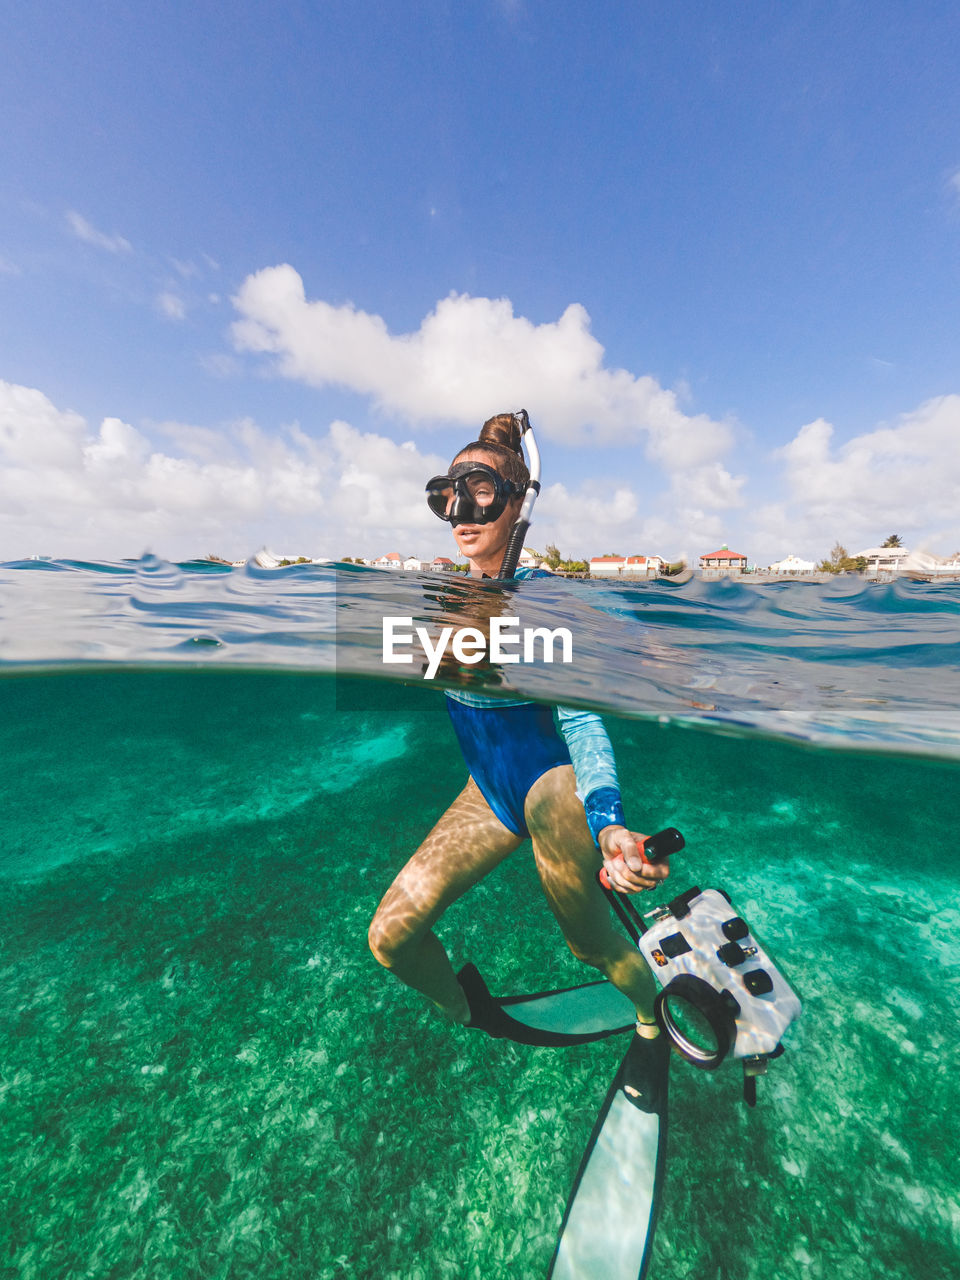 sea, water, leisure activity, one person, lifestyles, sky, sport, nature, aquatic sport, underwater, adventure, real people, beauty in nature, young adult, scuba mask, day, mid adult, full length, snorkeling, outdoors, undersea, eyewear